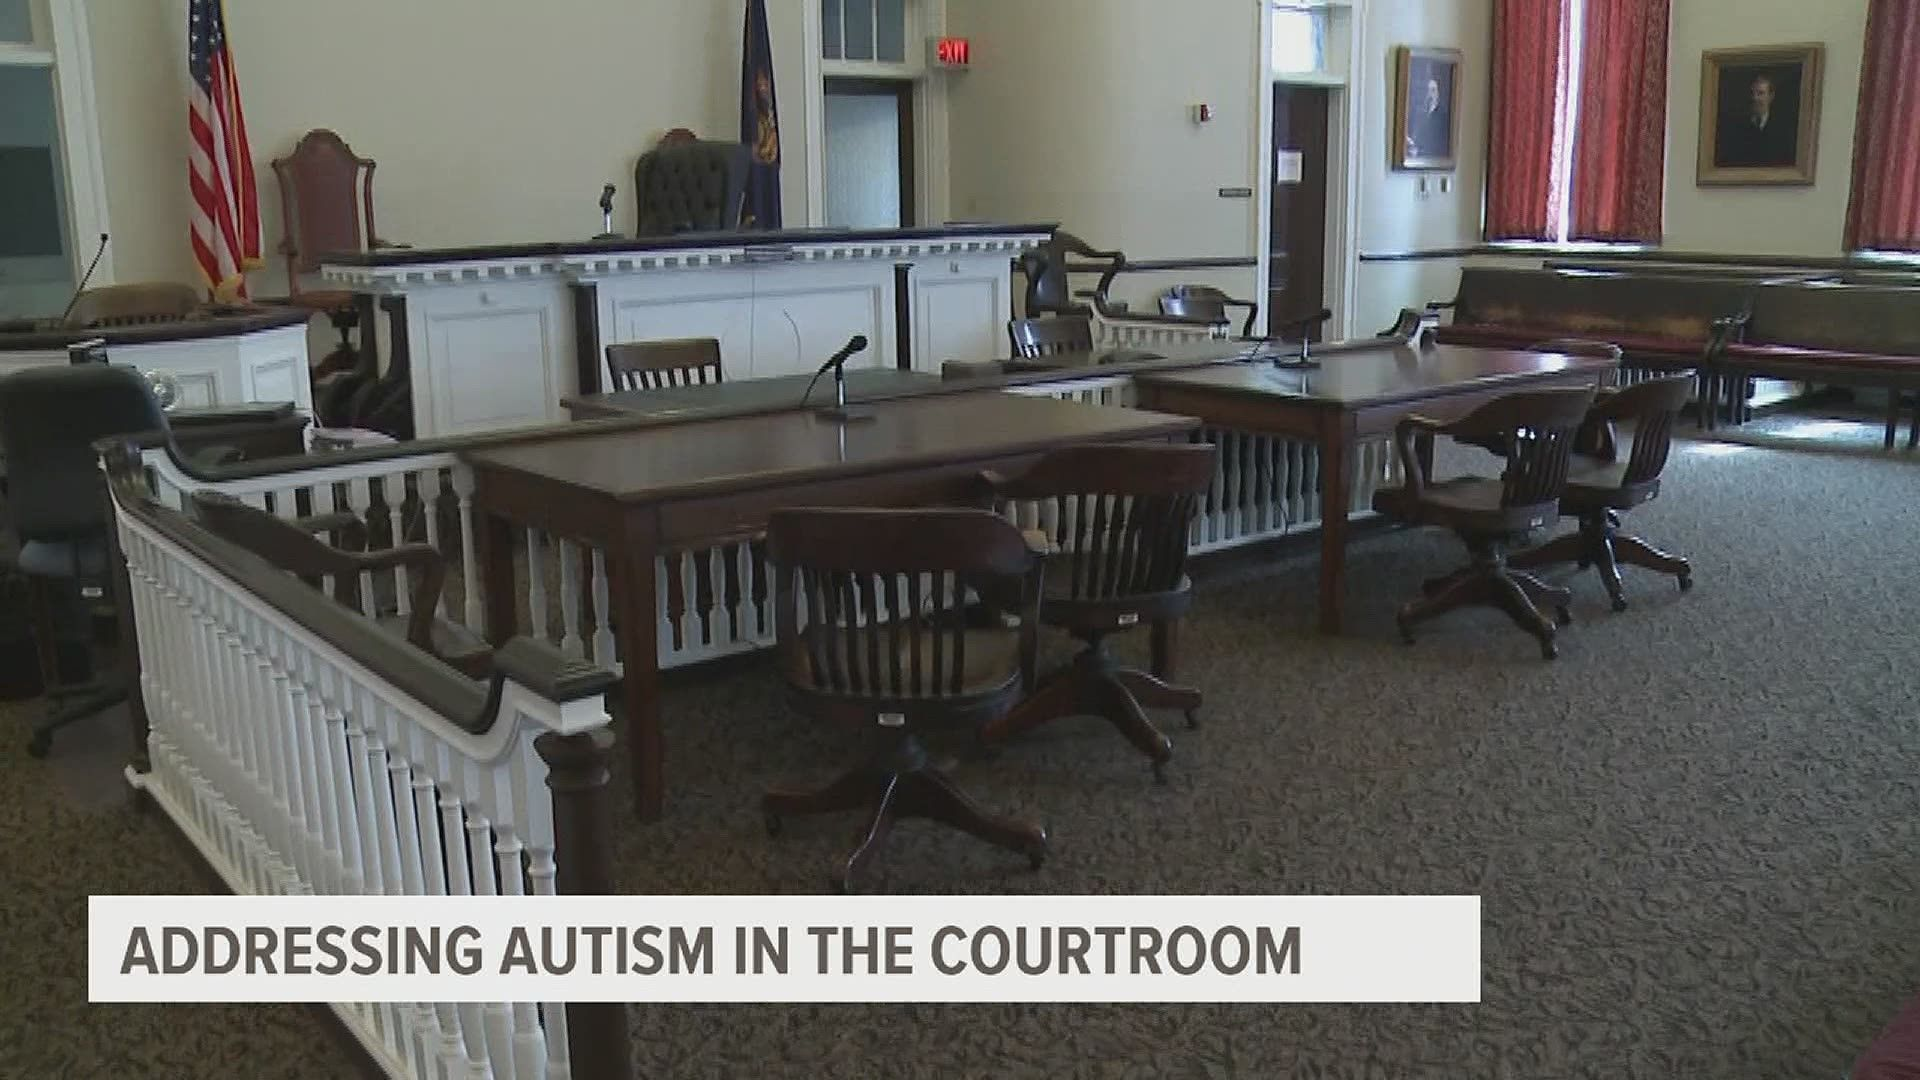 Why Autistic People Are Less Likely To Get A Fair Trial